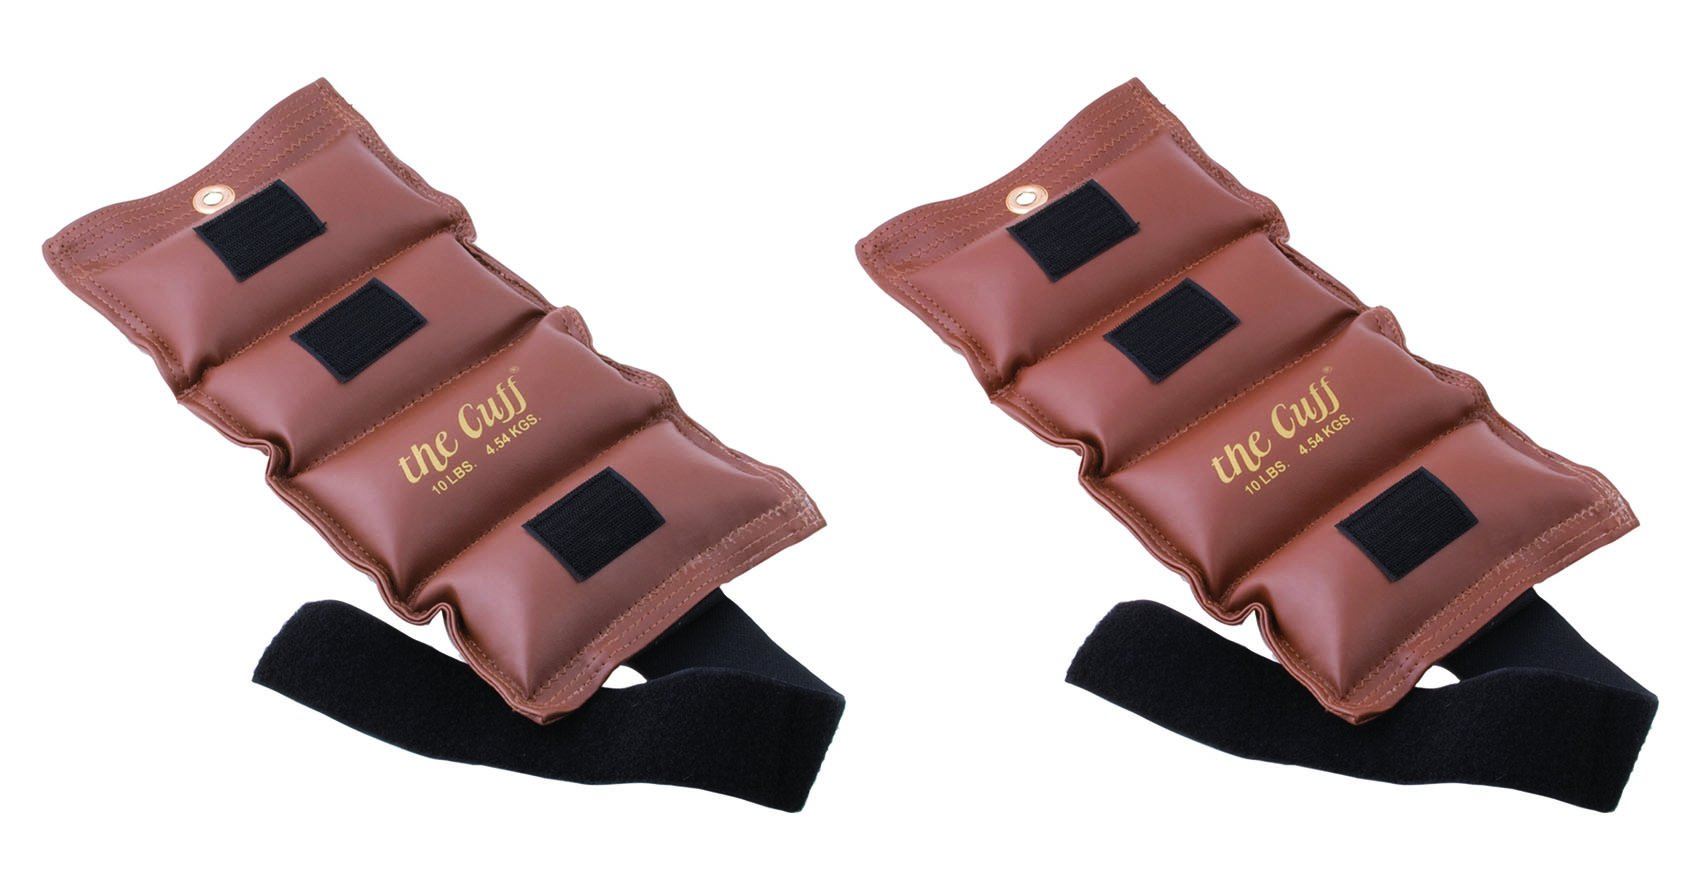 The Cuff Deluxe Ankle and Wrist Weight - 10 pound, Brown - Set of 2